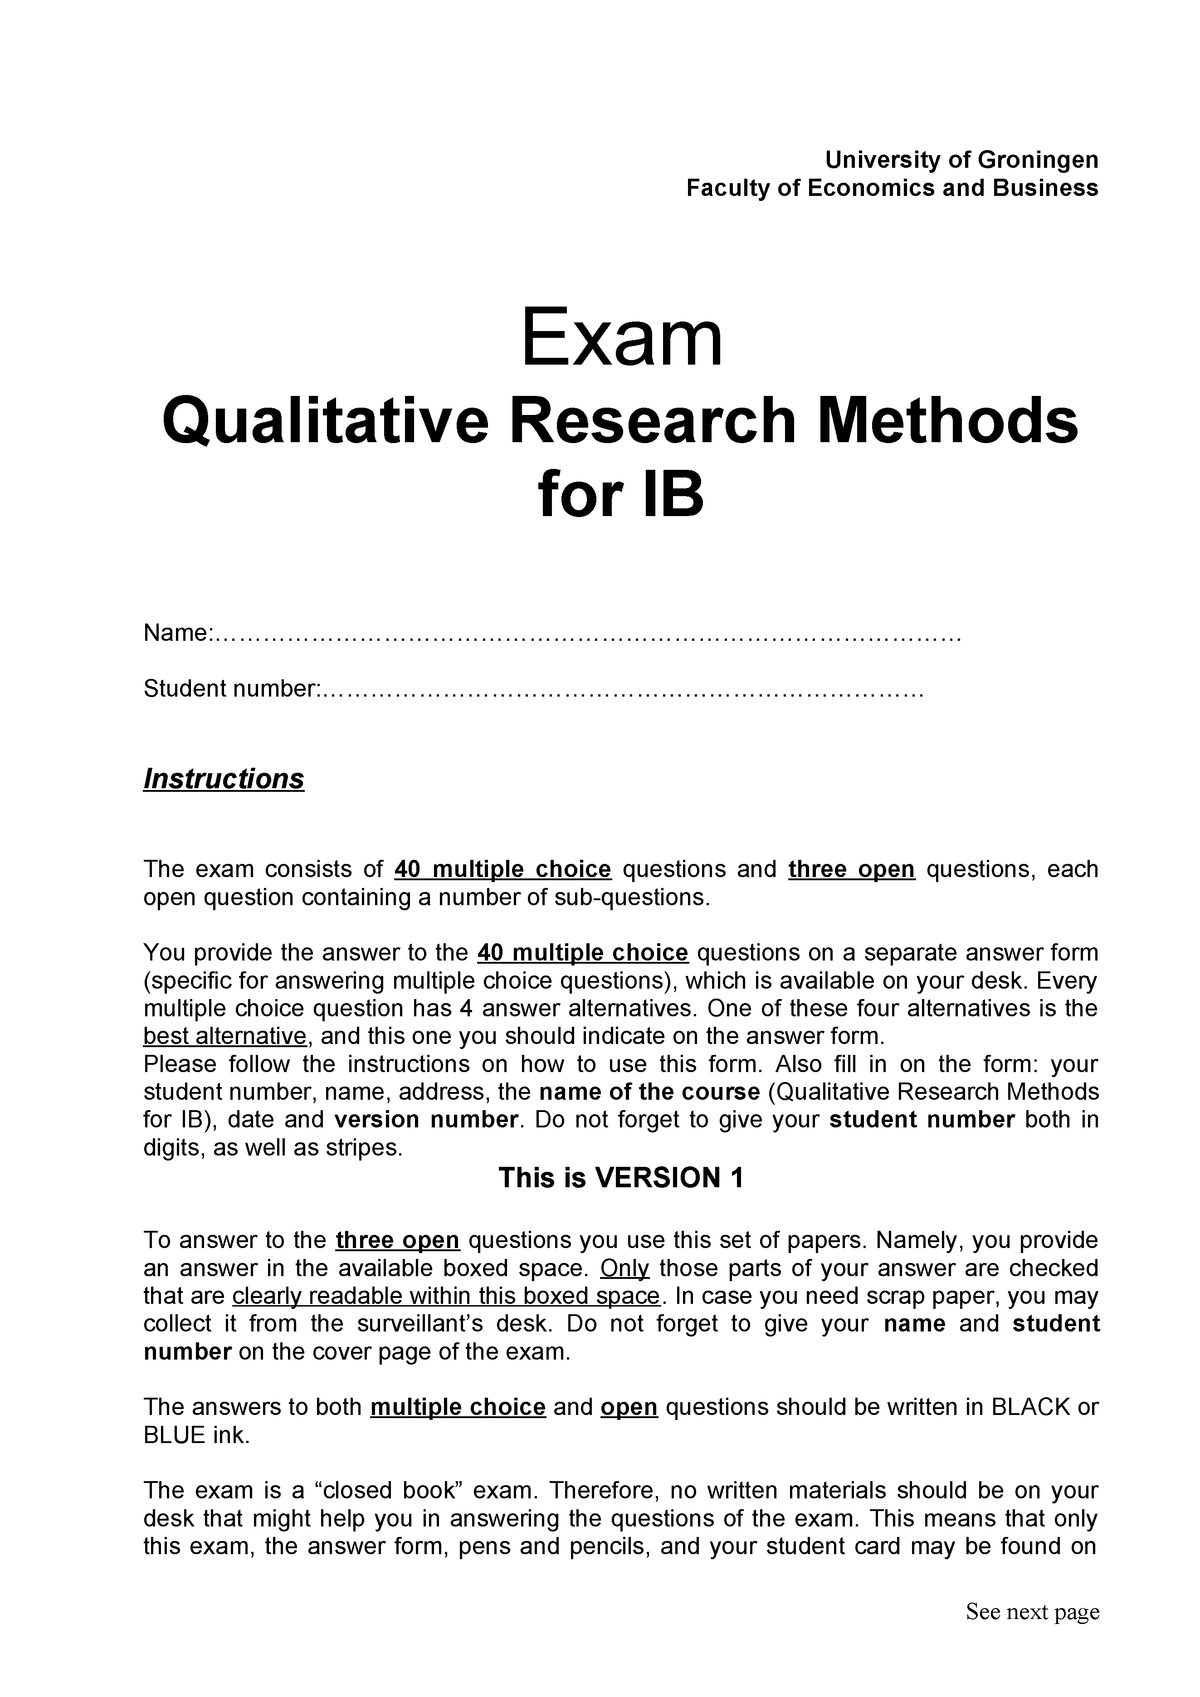 Exam March 2013, Exam Qualitative Research Methods for IB